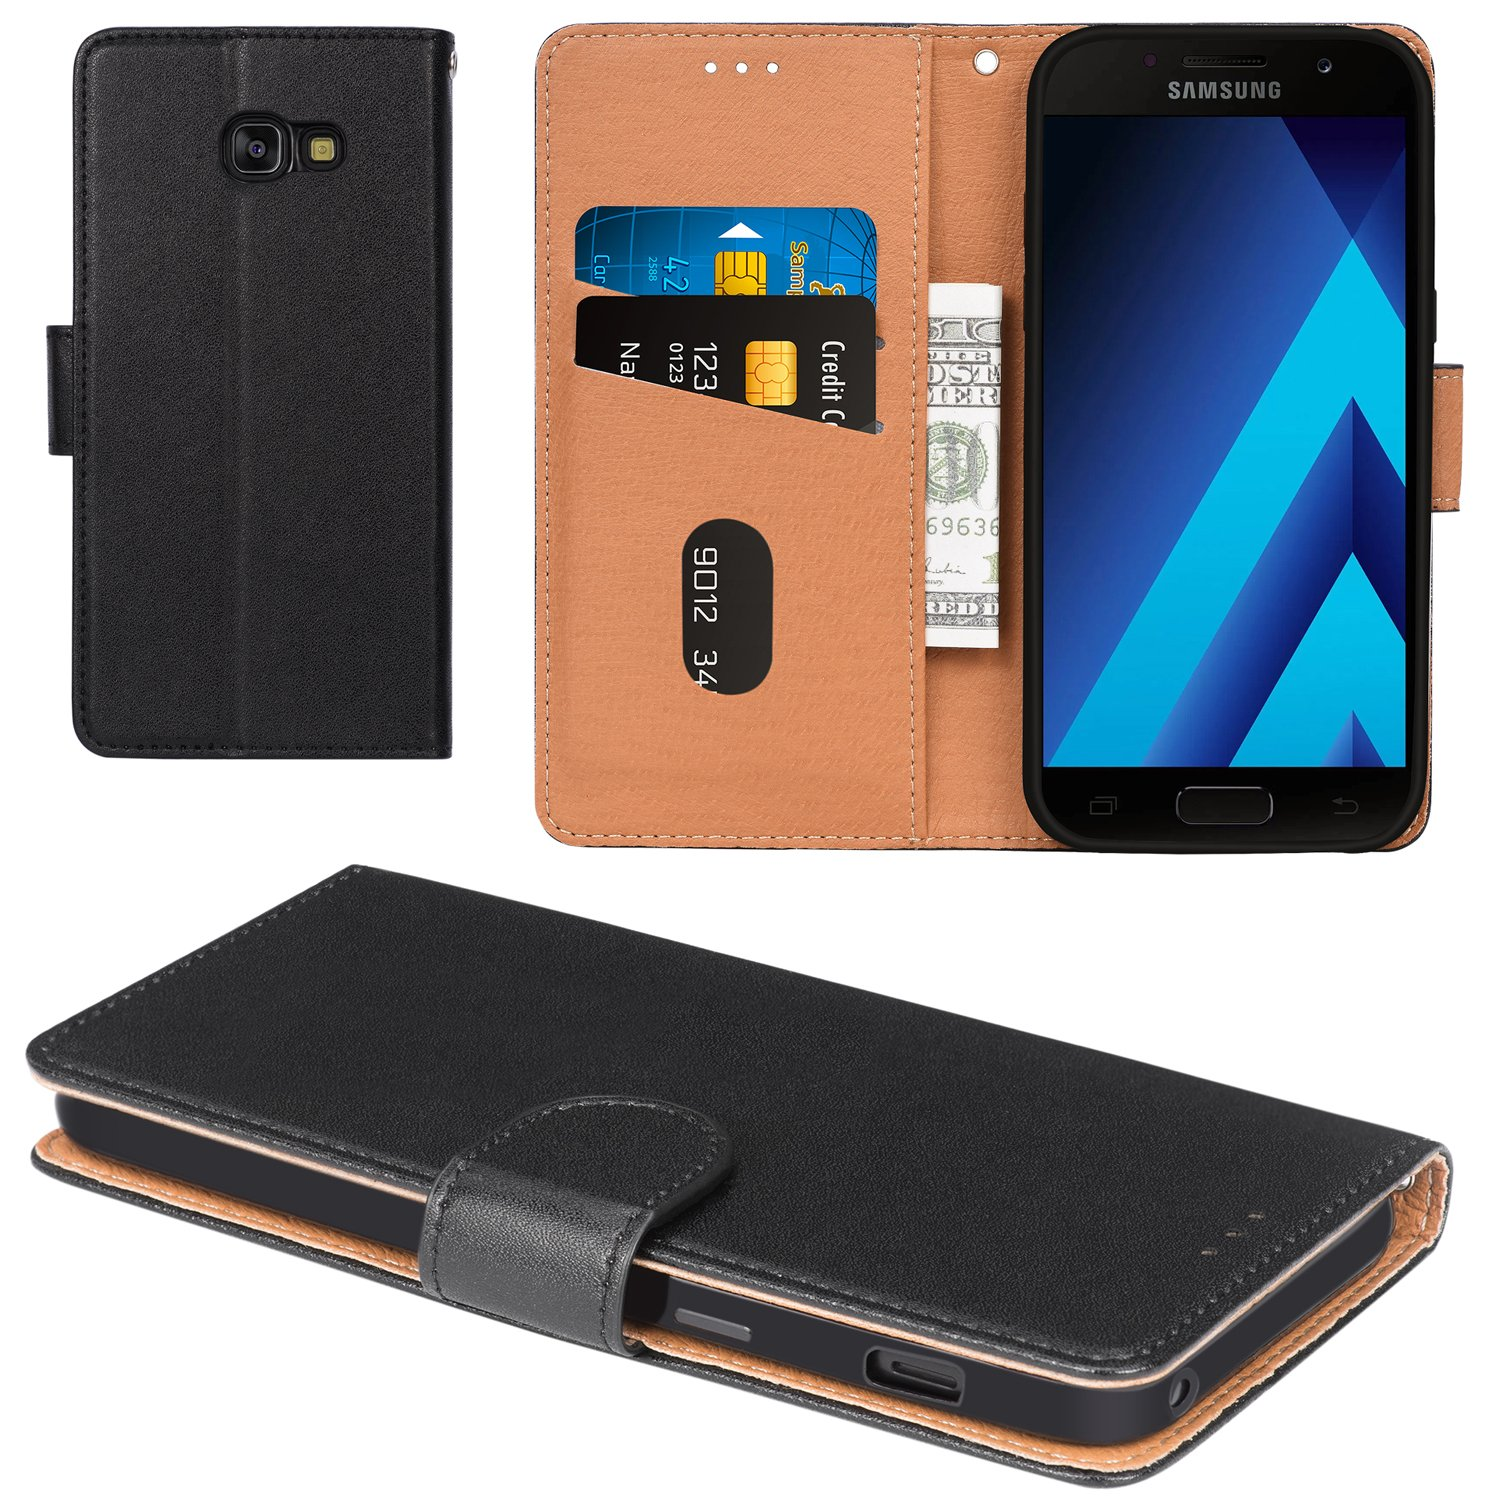 Galaxy A5 2017 Case, Aicoco Flip Cover Leather, Phone Wallet Case for Samsung Galaxy A5 2017 (5.2 inch) - Black